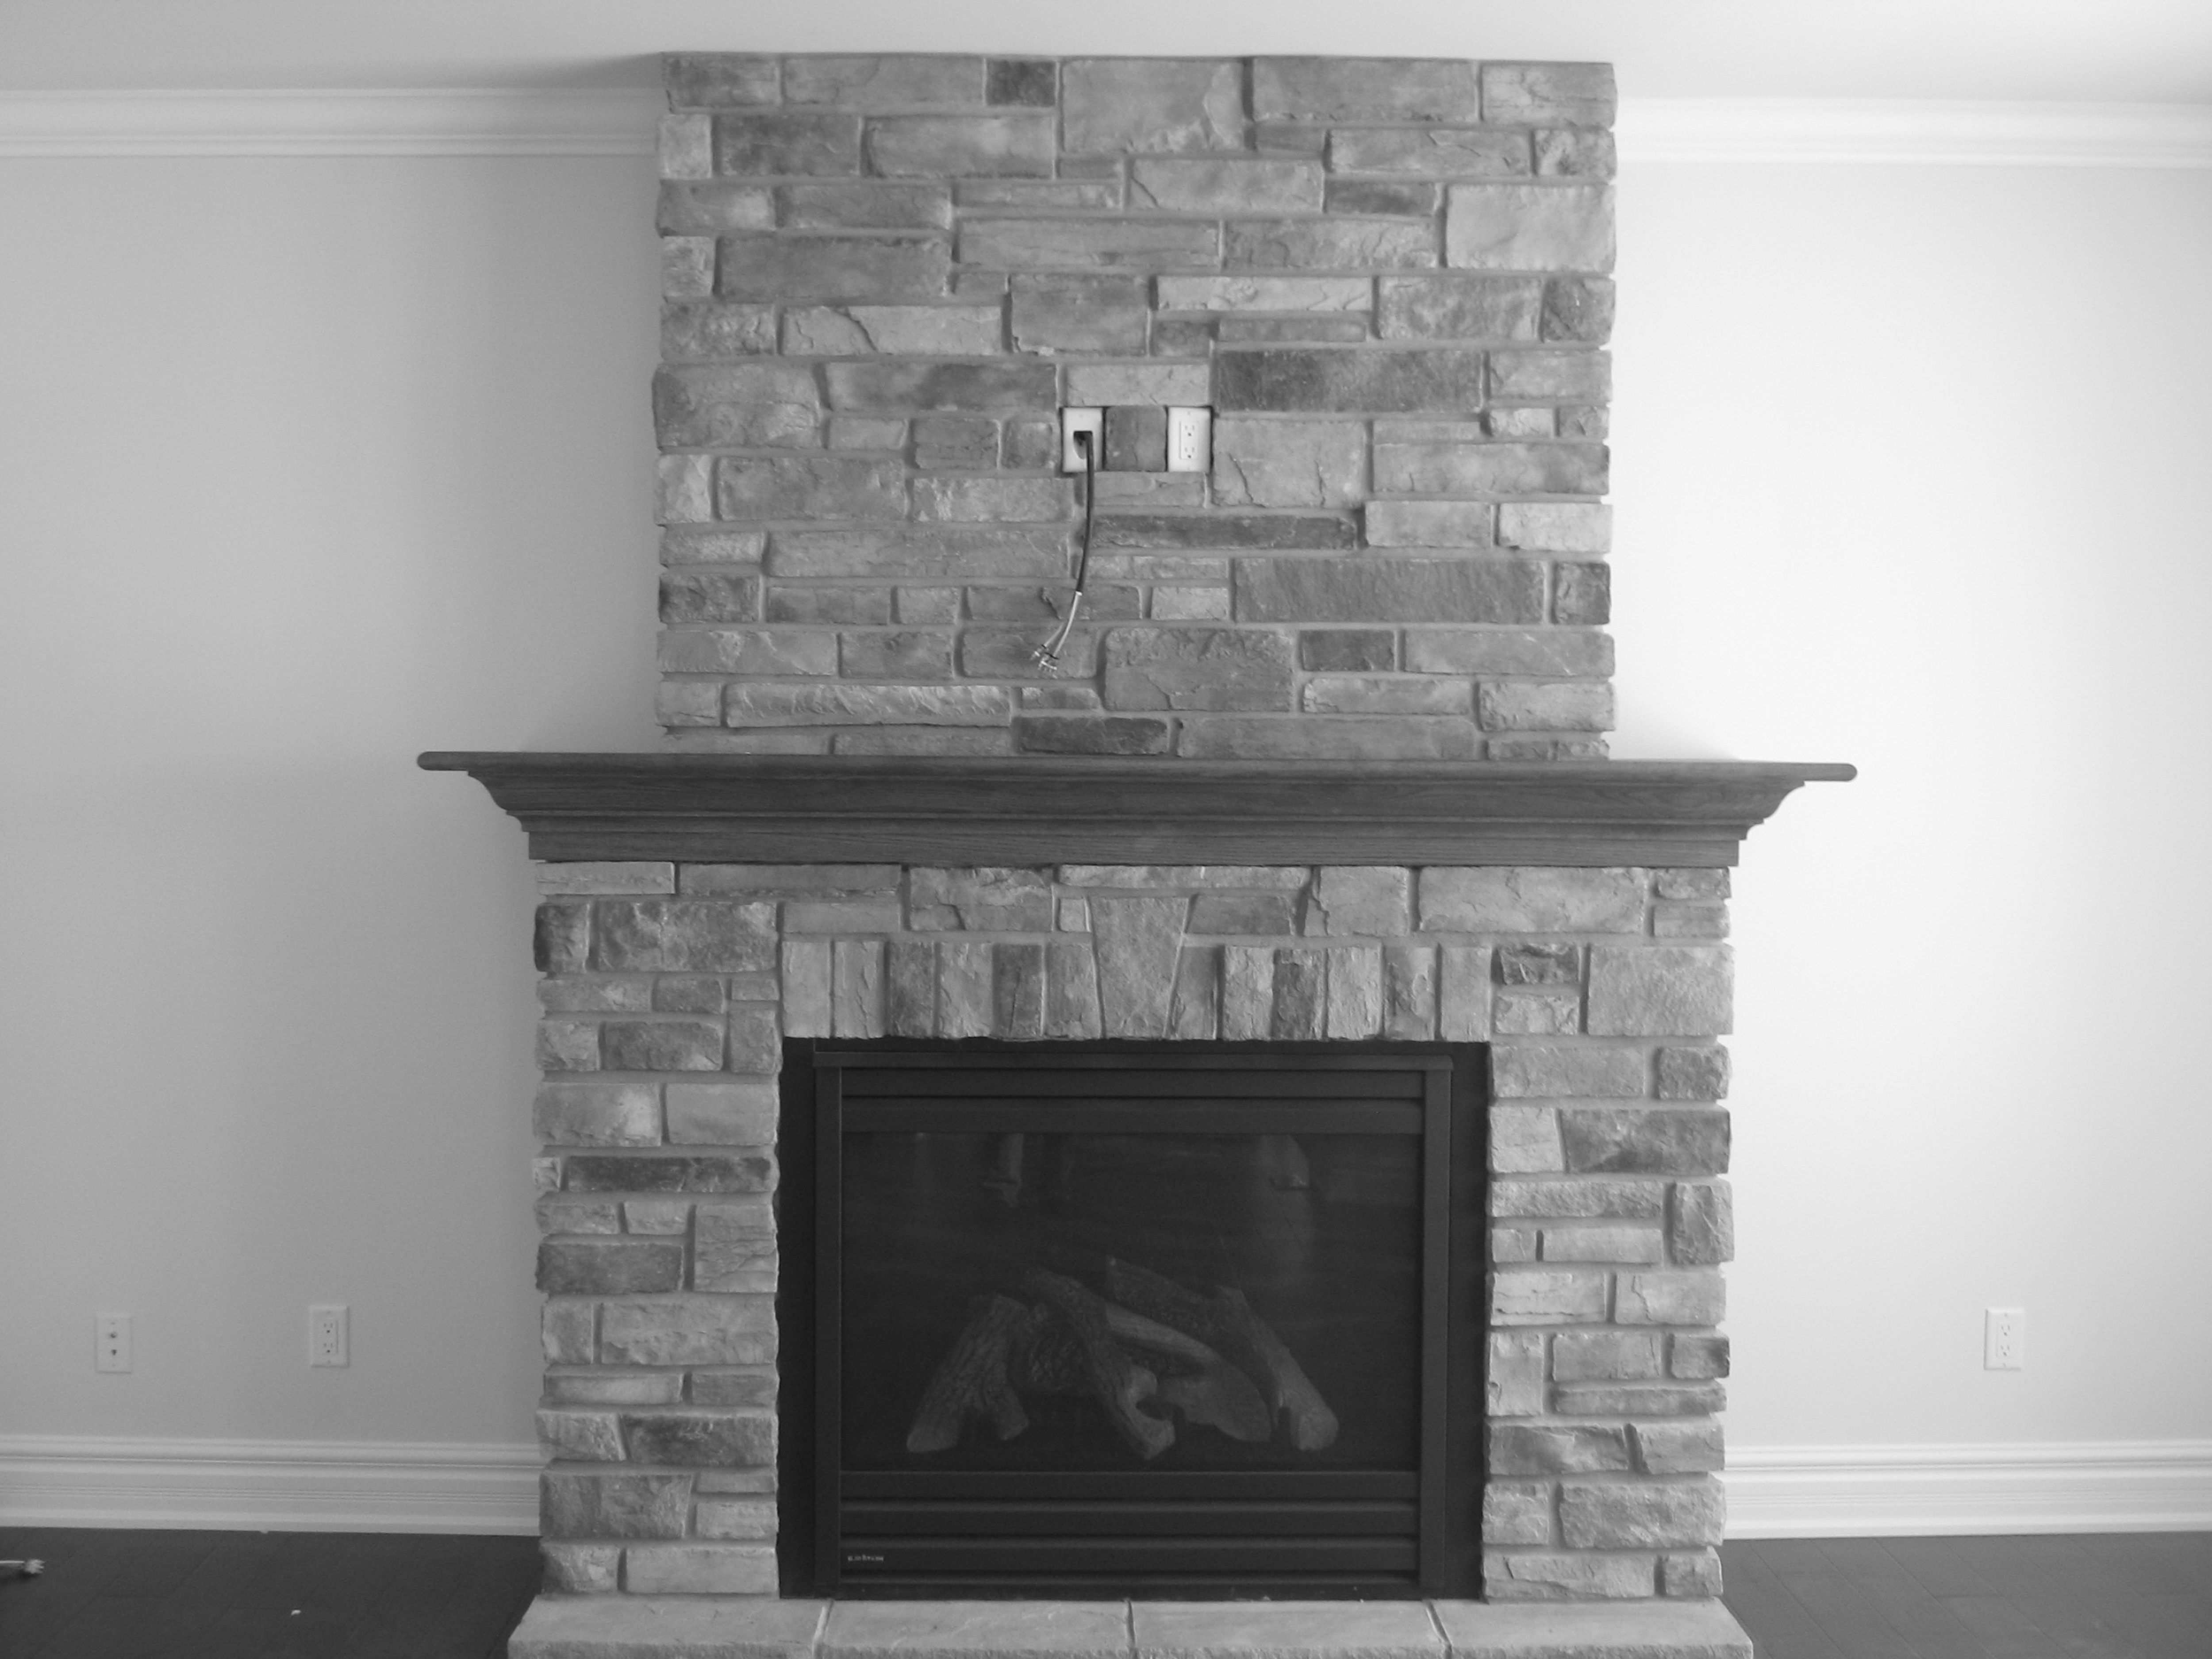 Stone Fireplace Ideas Photos: Interior : Cultured Stone Fireplace Designs Wall Texture